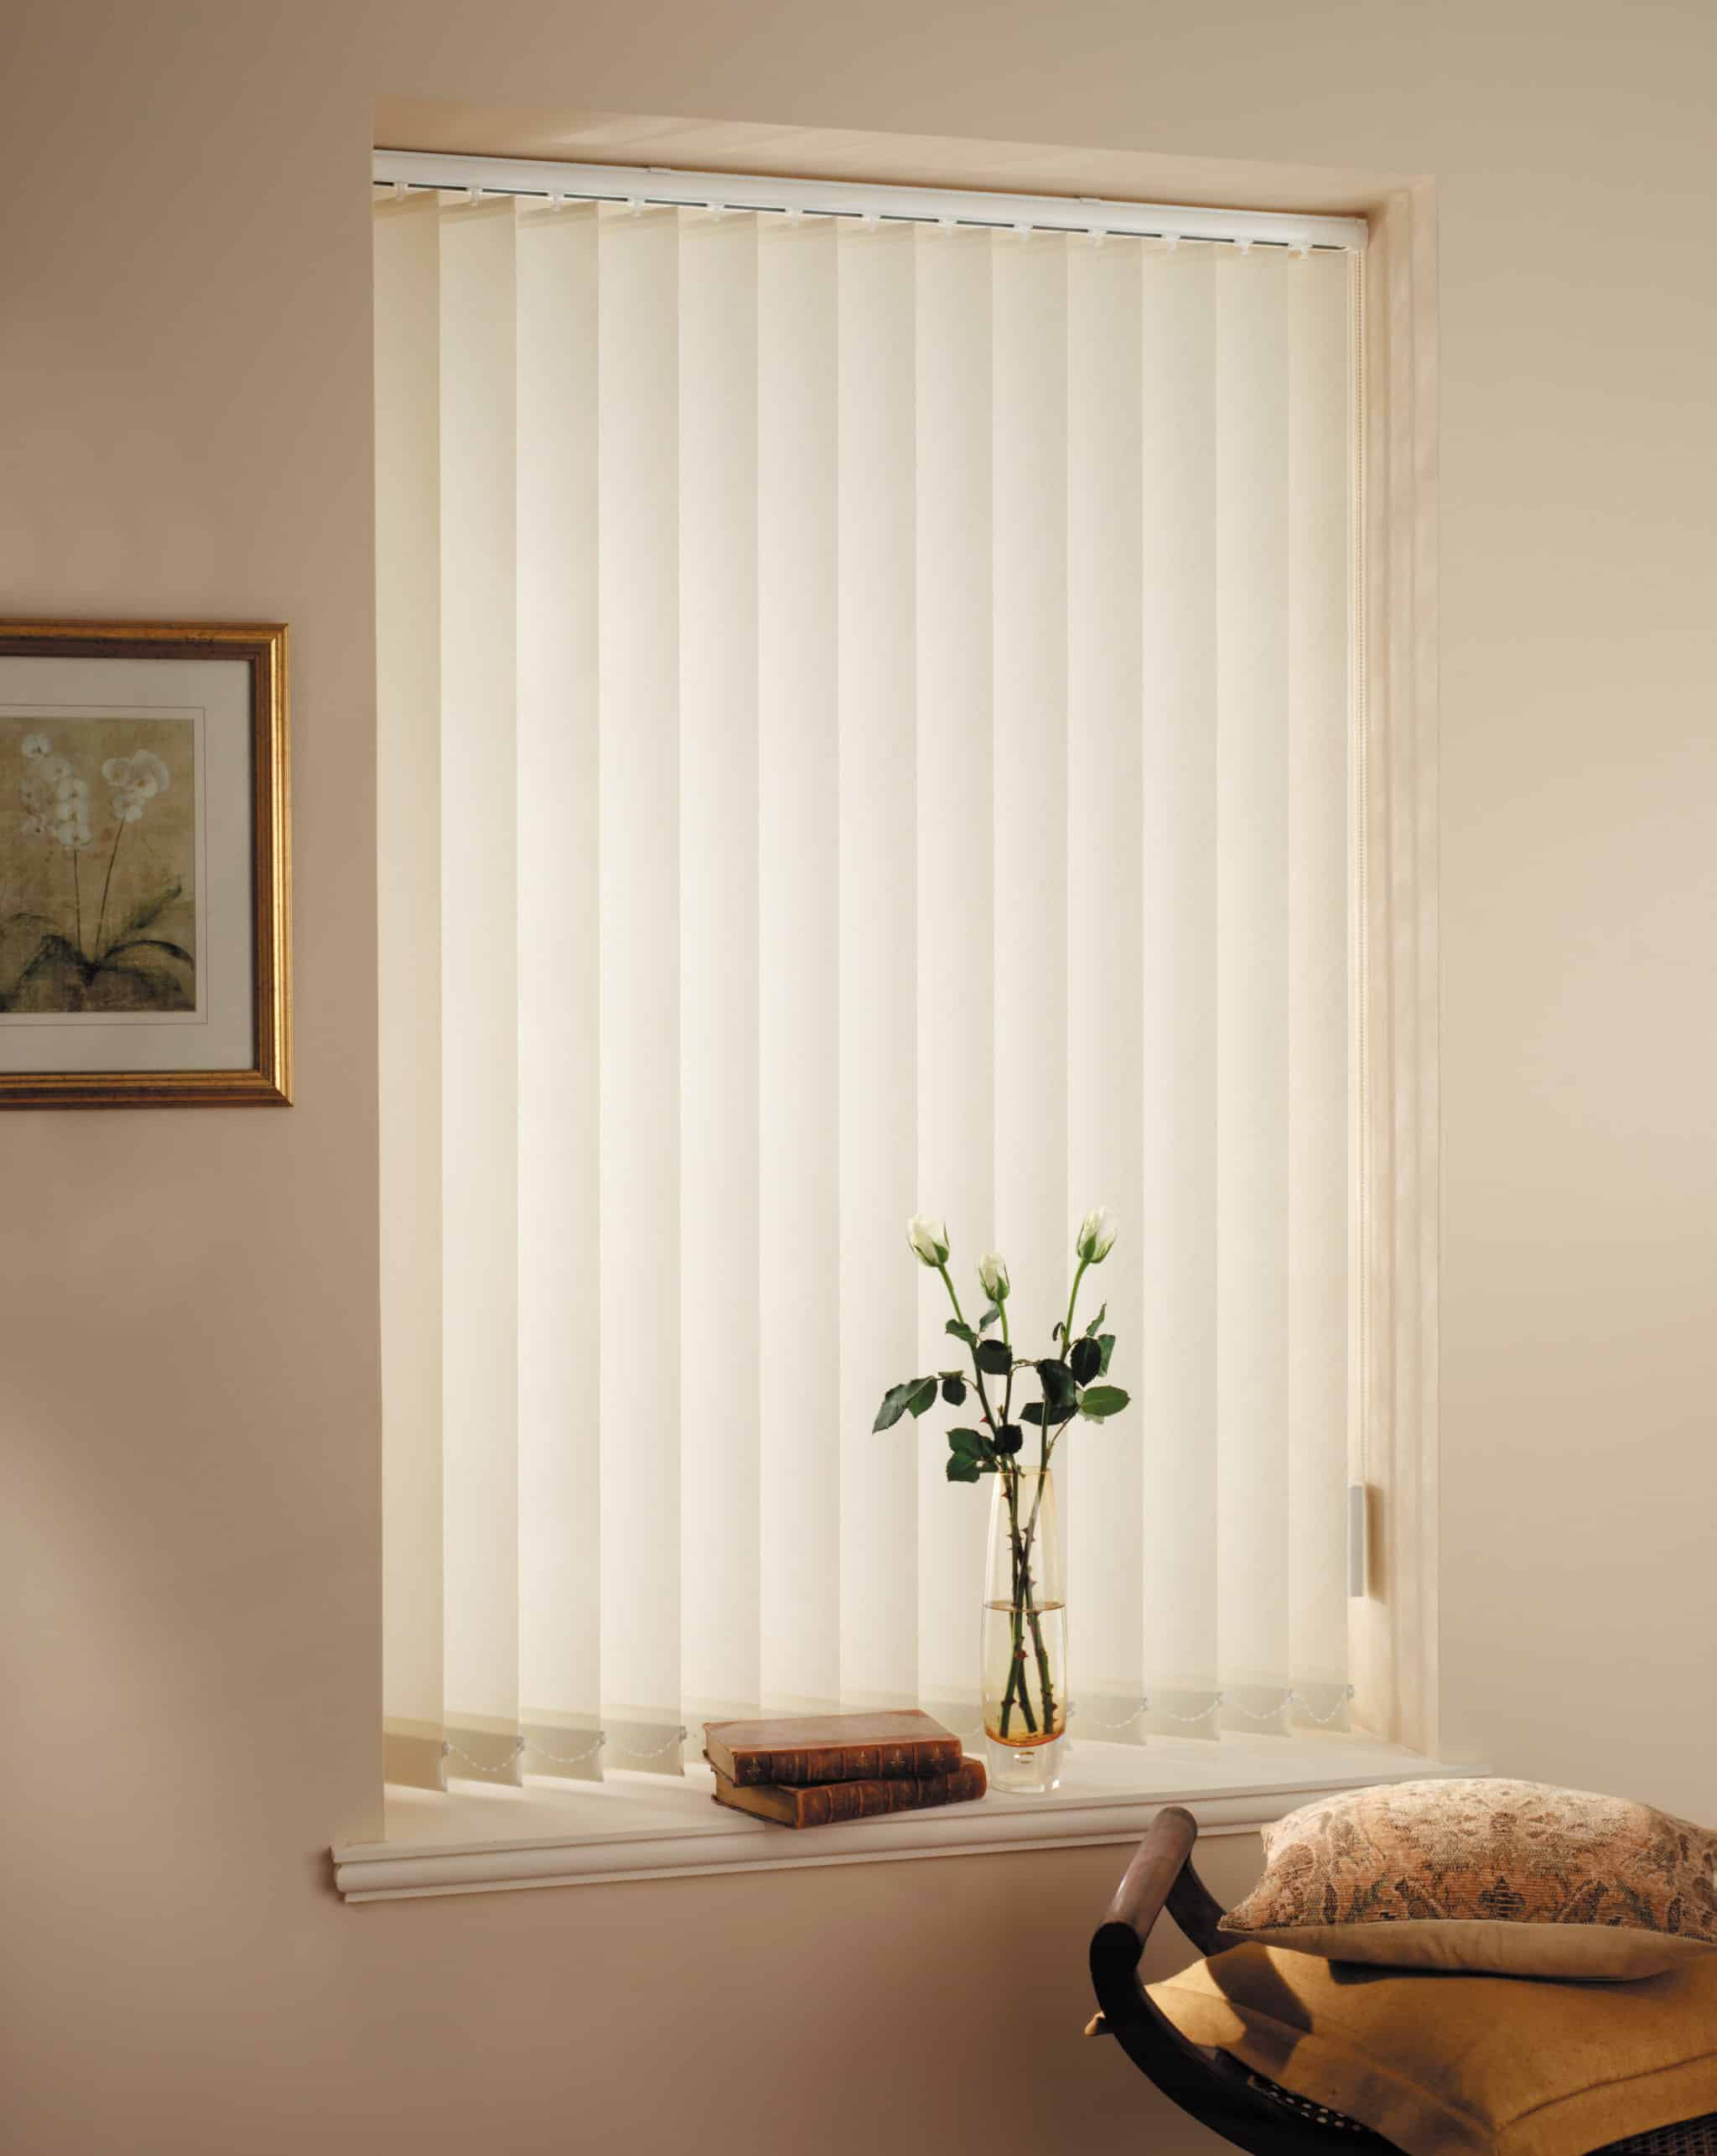 less just drop screen cream vertical for replacement magic special asp p length blinds than louvres offer slats